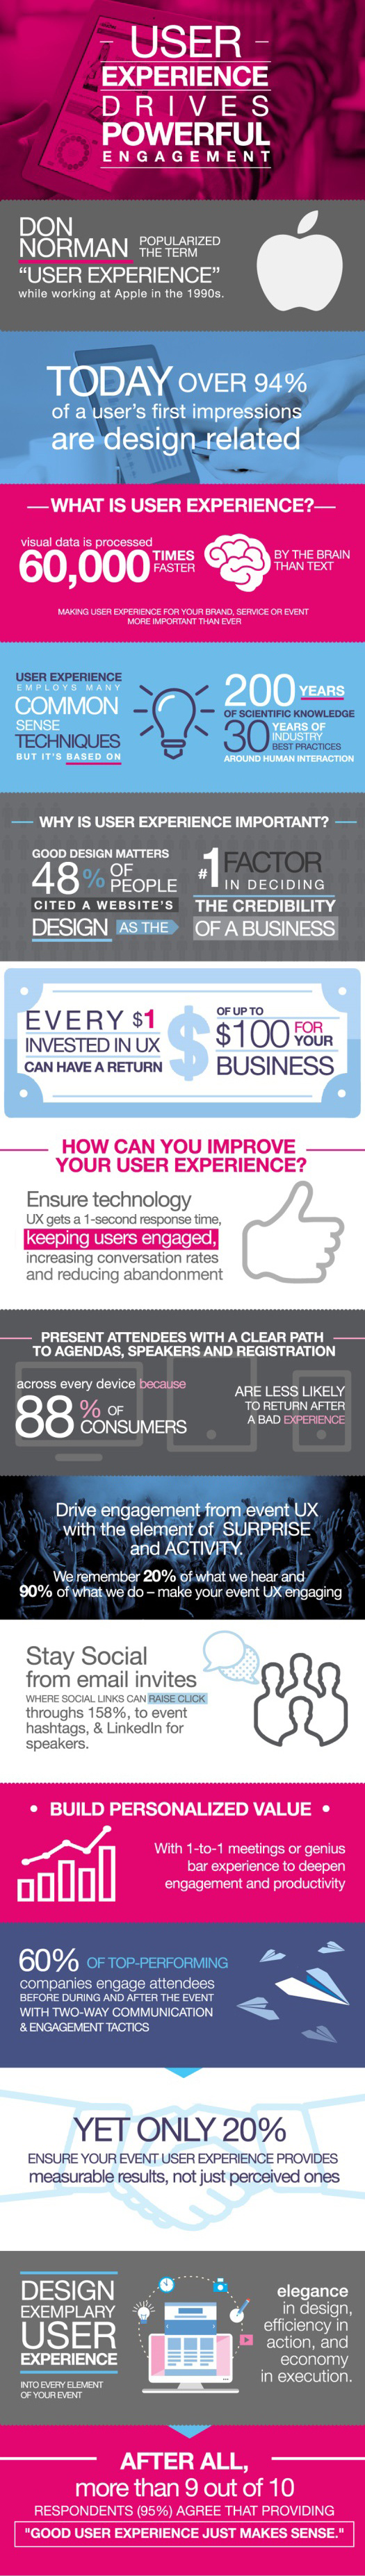 User Experience Drives Powerful Engagement Infographic